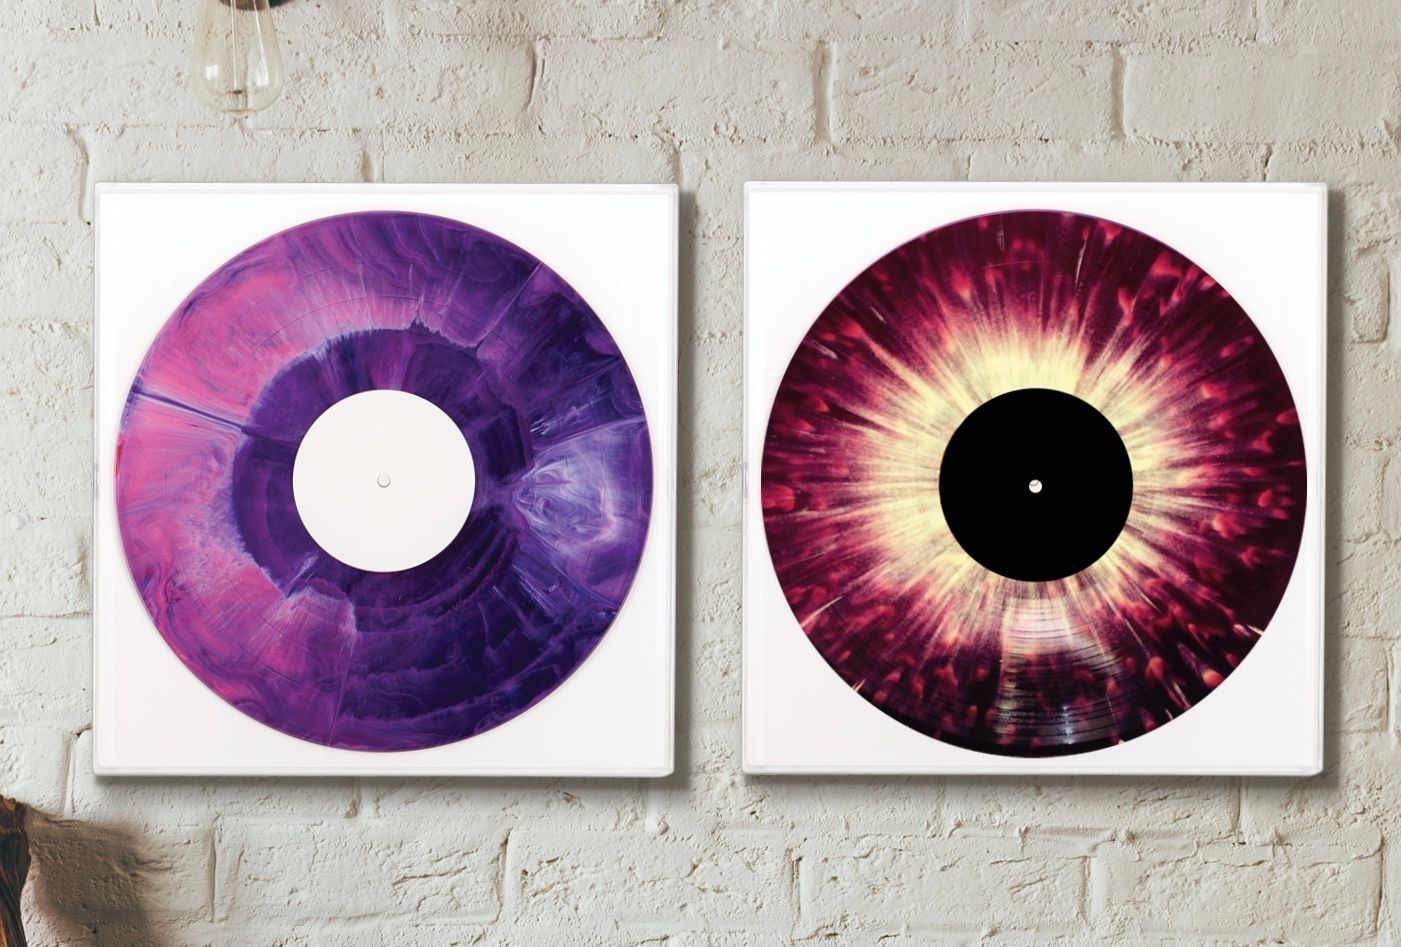 CLRCASE: A cool new way to display vinyl records